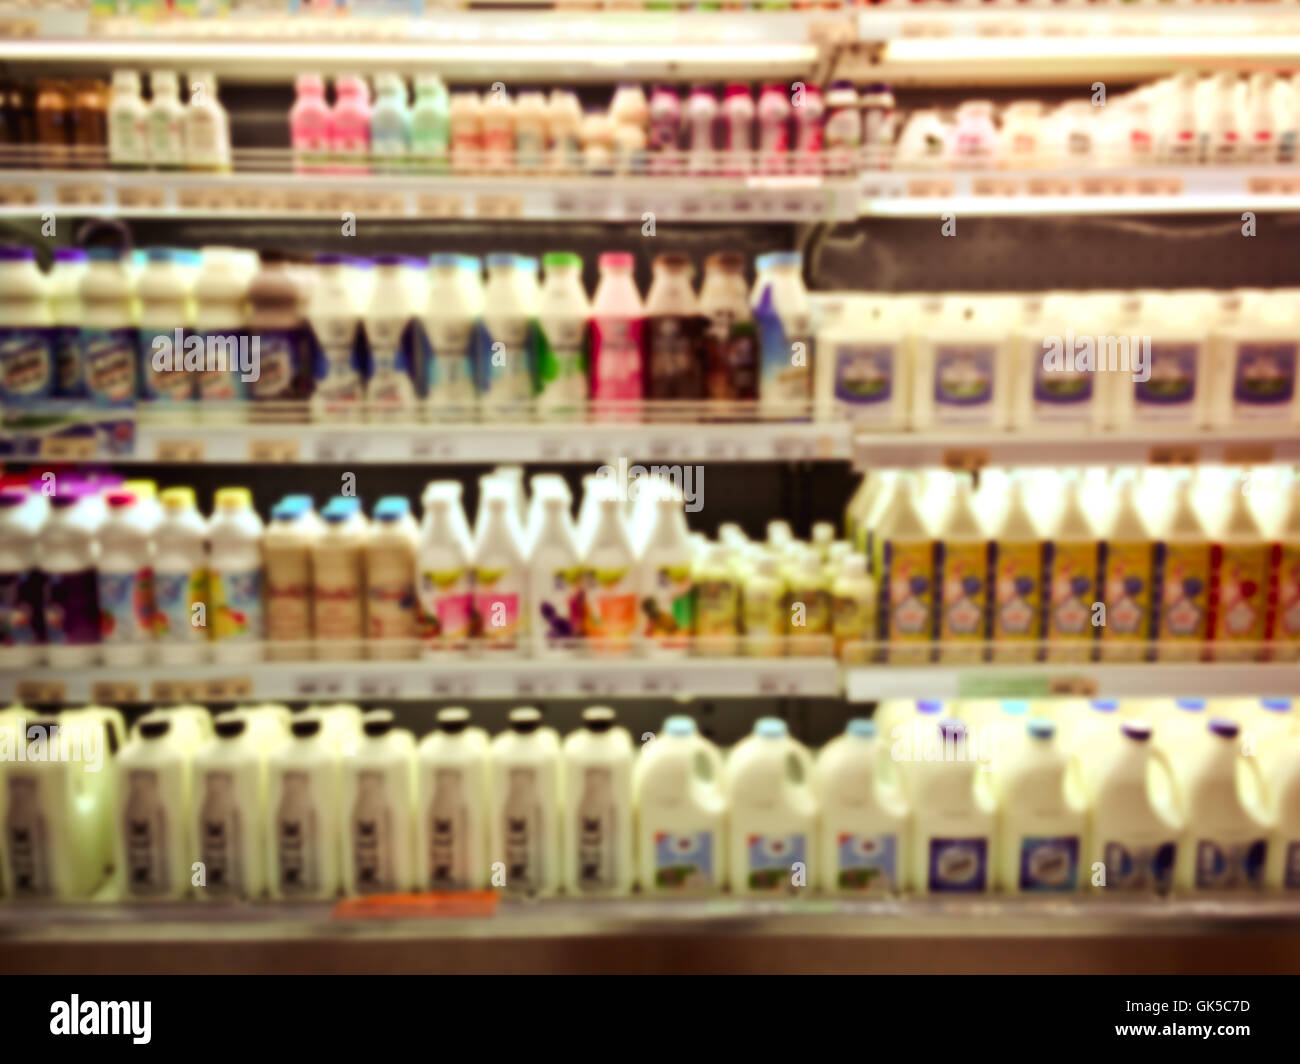 blurred image background with bottle of milks In the mall - Stock Image